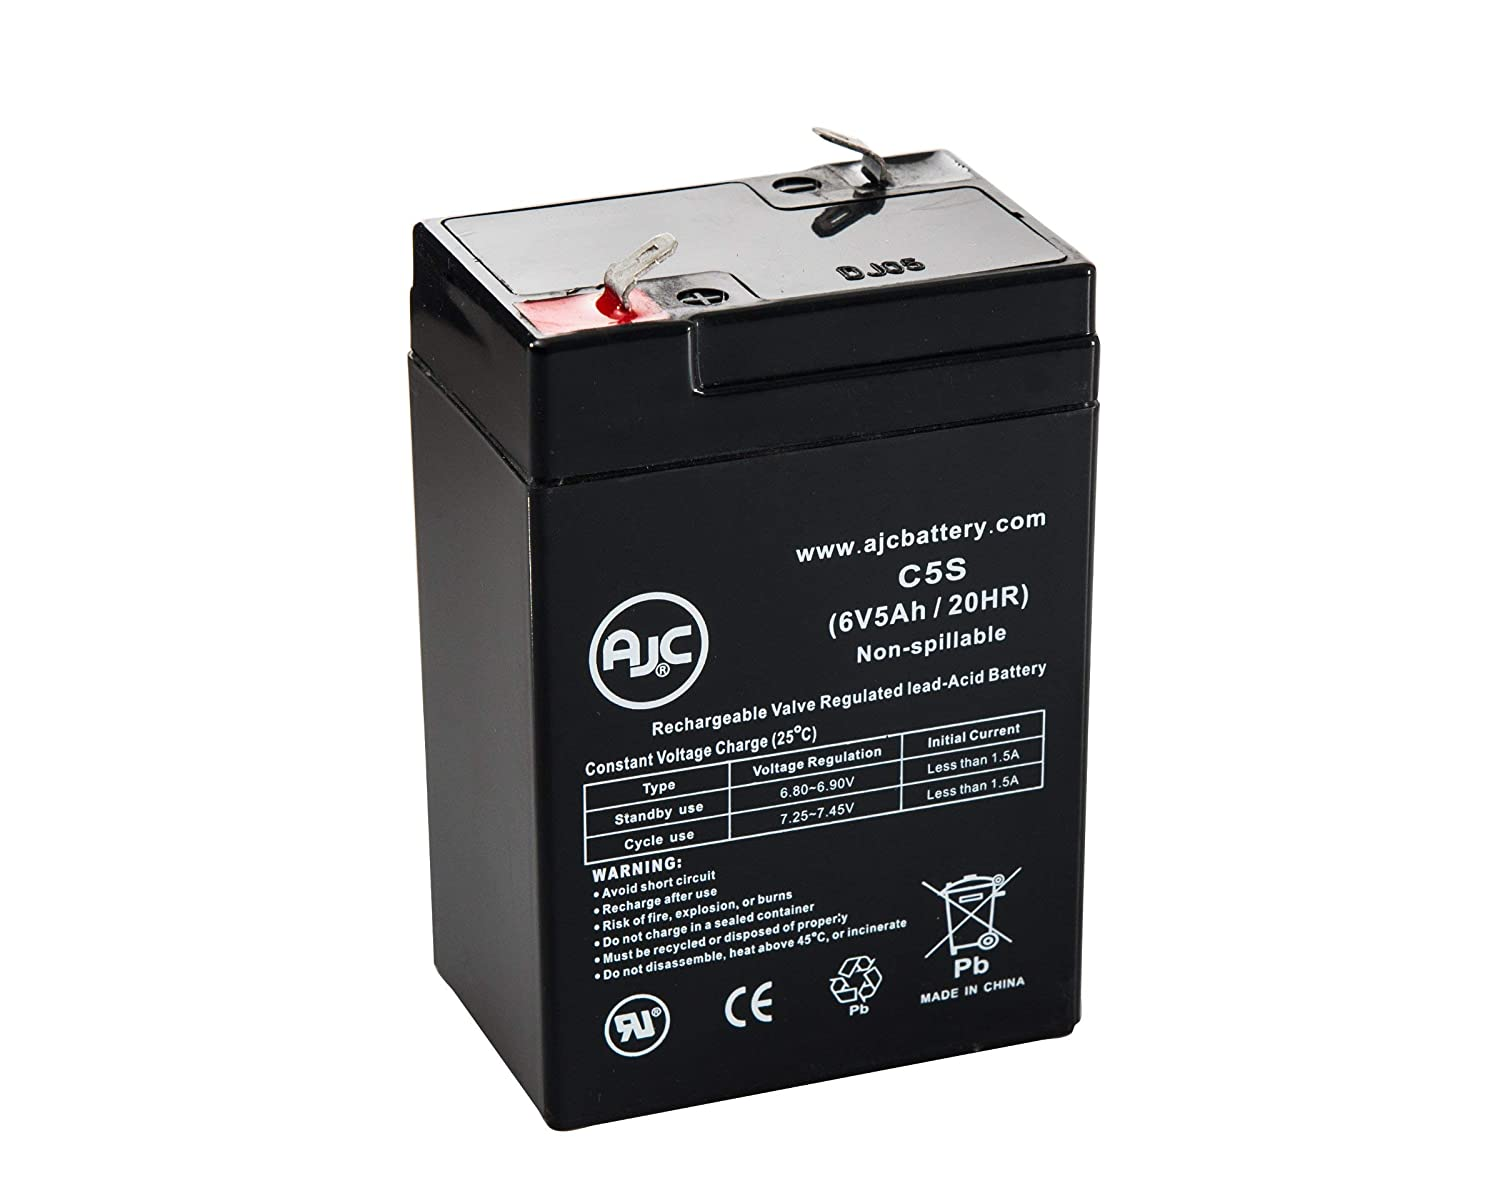 Kung Long WP5-6S 6V 5Ah Sealed Lead Acid Battery - This is an AJC Brand Replacement AJC Battery